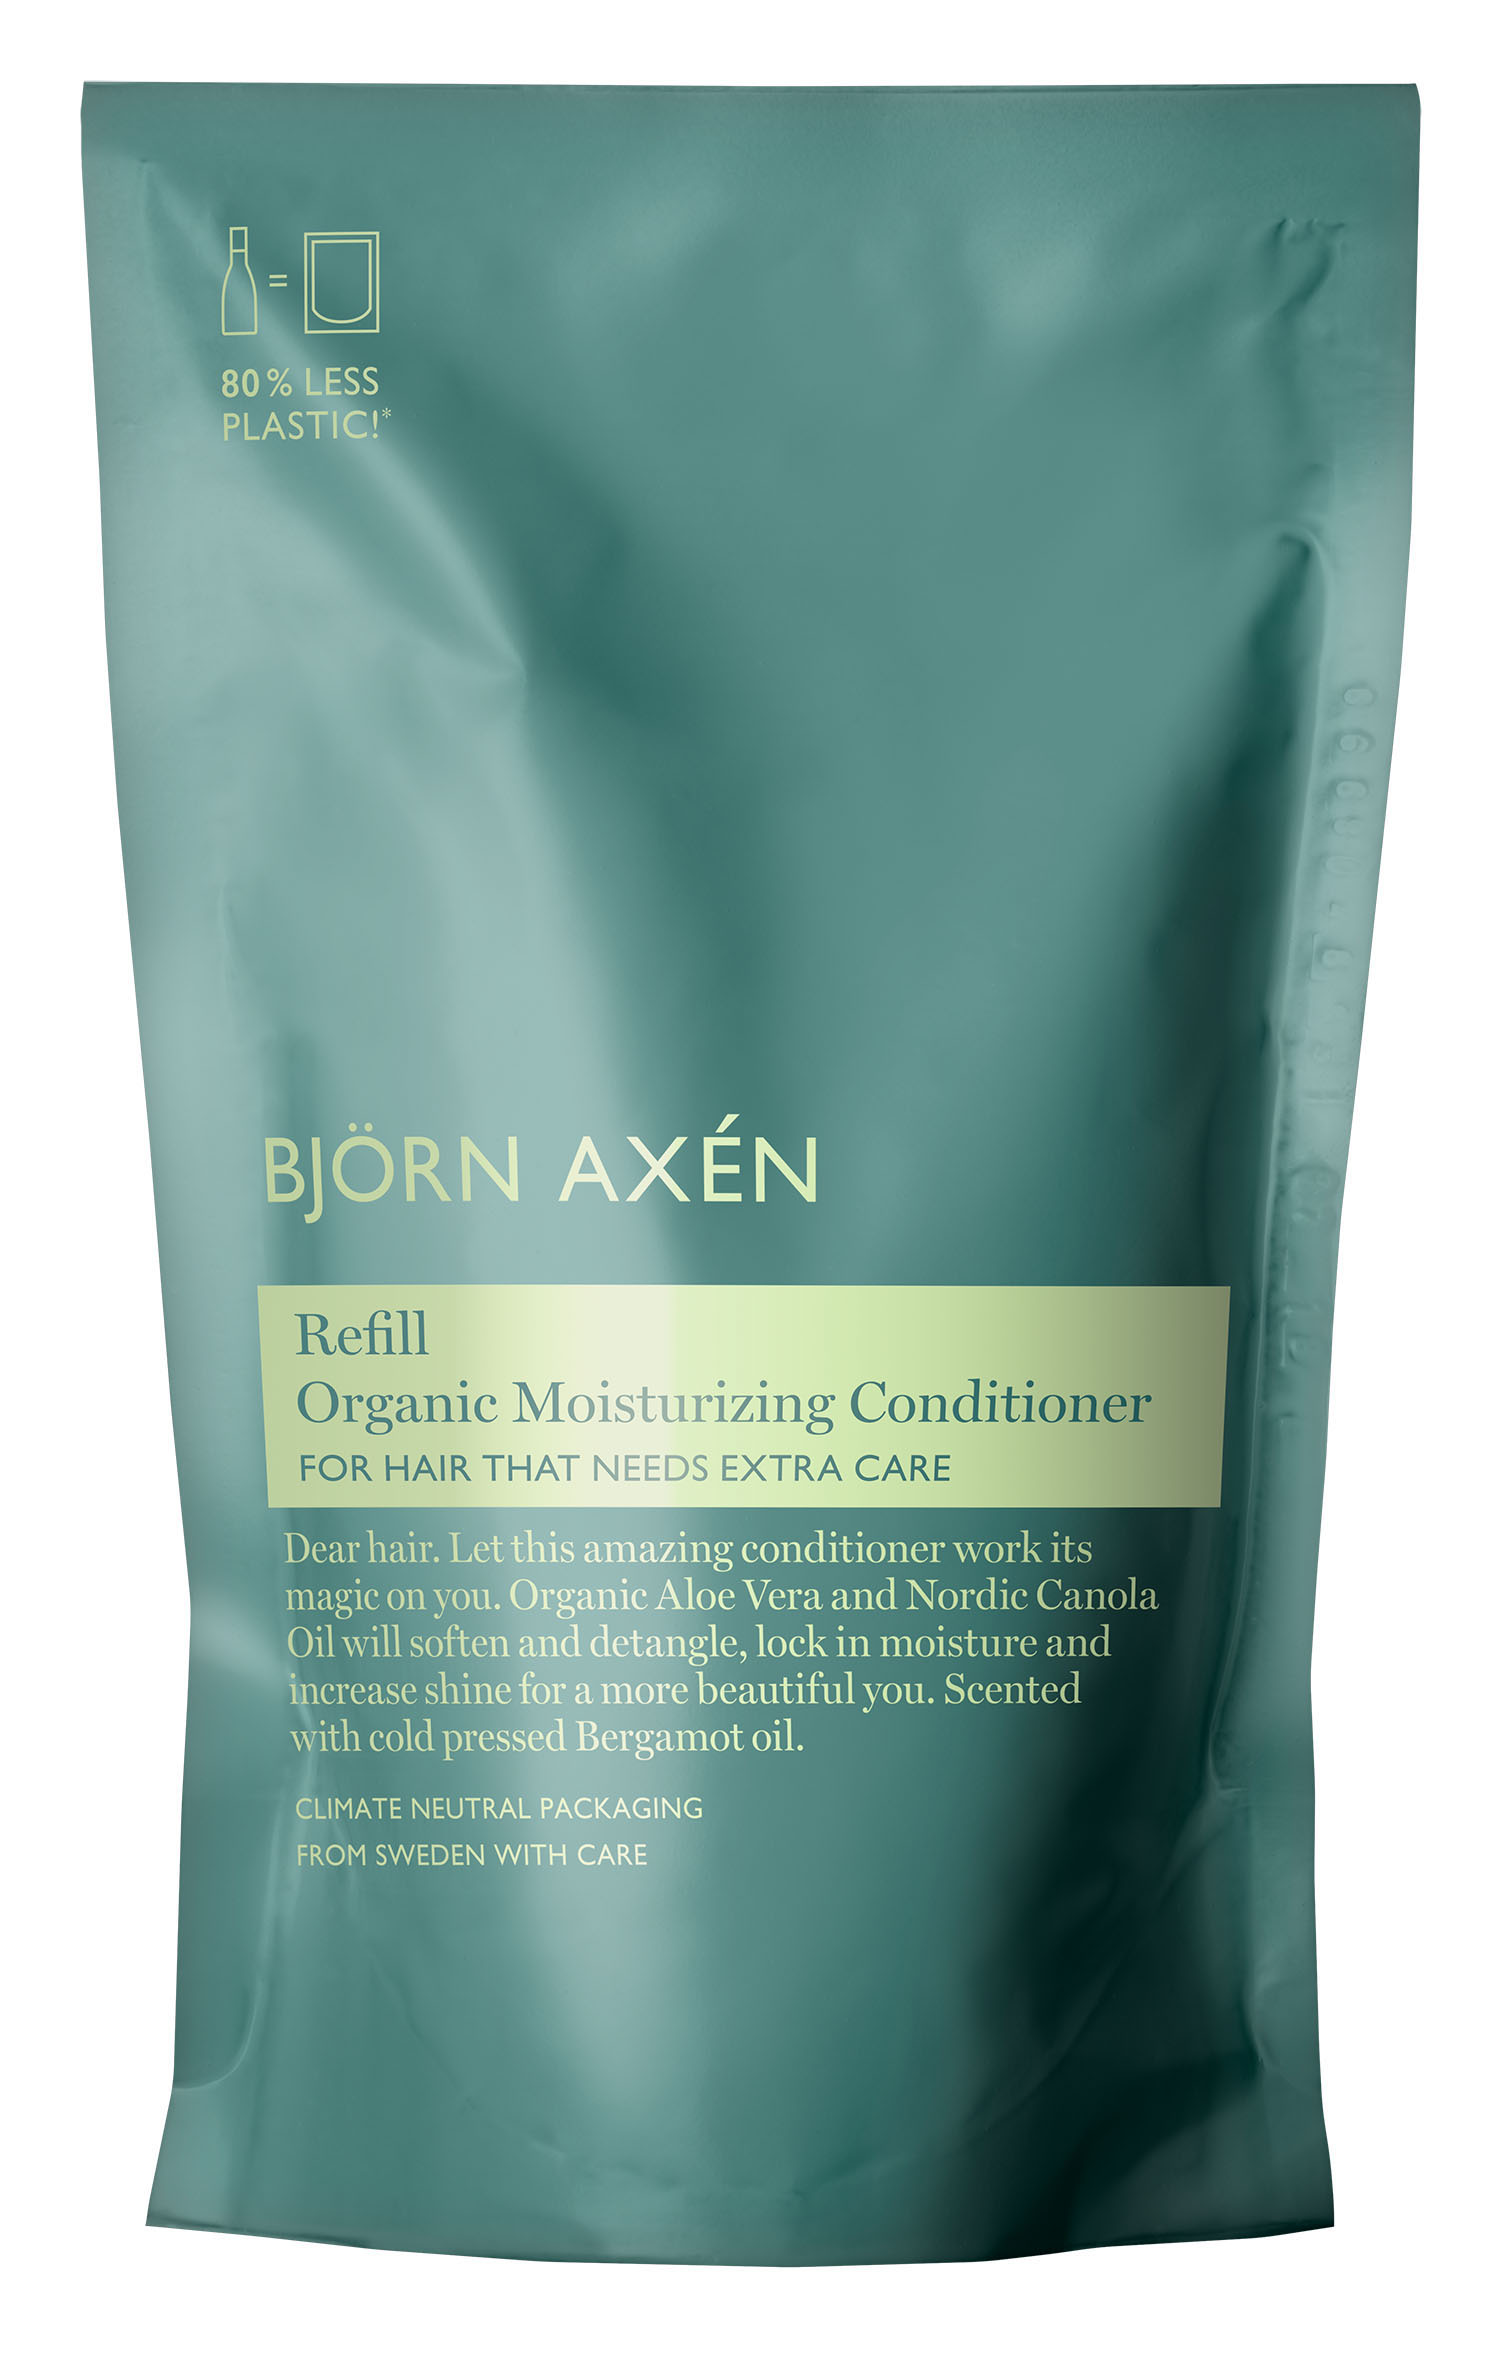 Refill Organic Moisturizing Conditioner